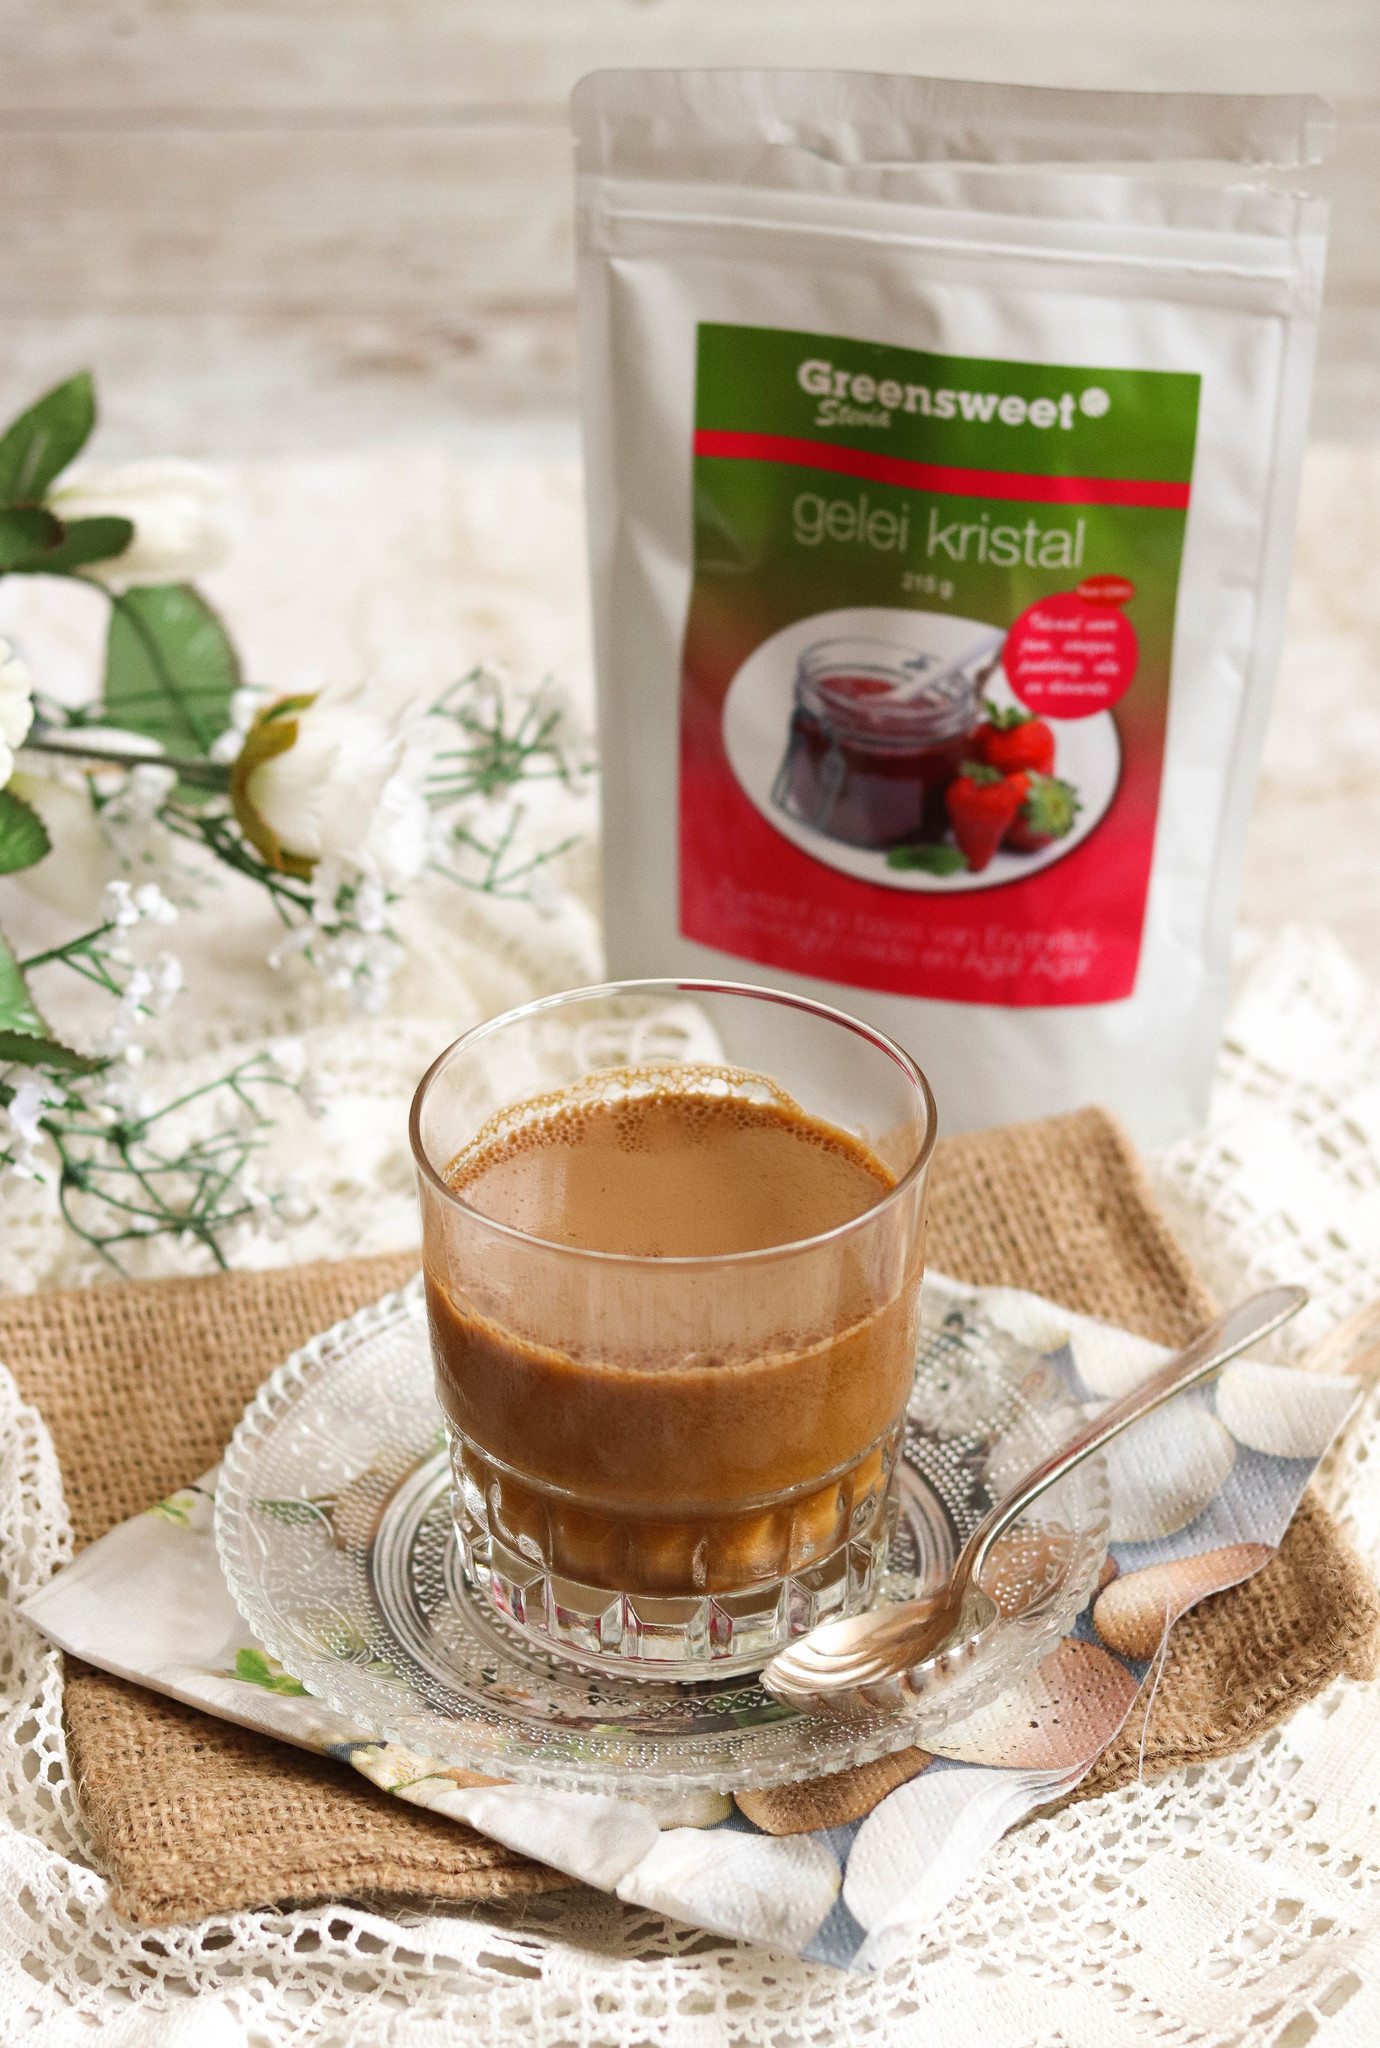 Coffee mousse with greensweet jelly2.jpg